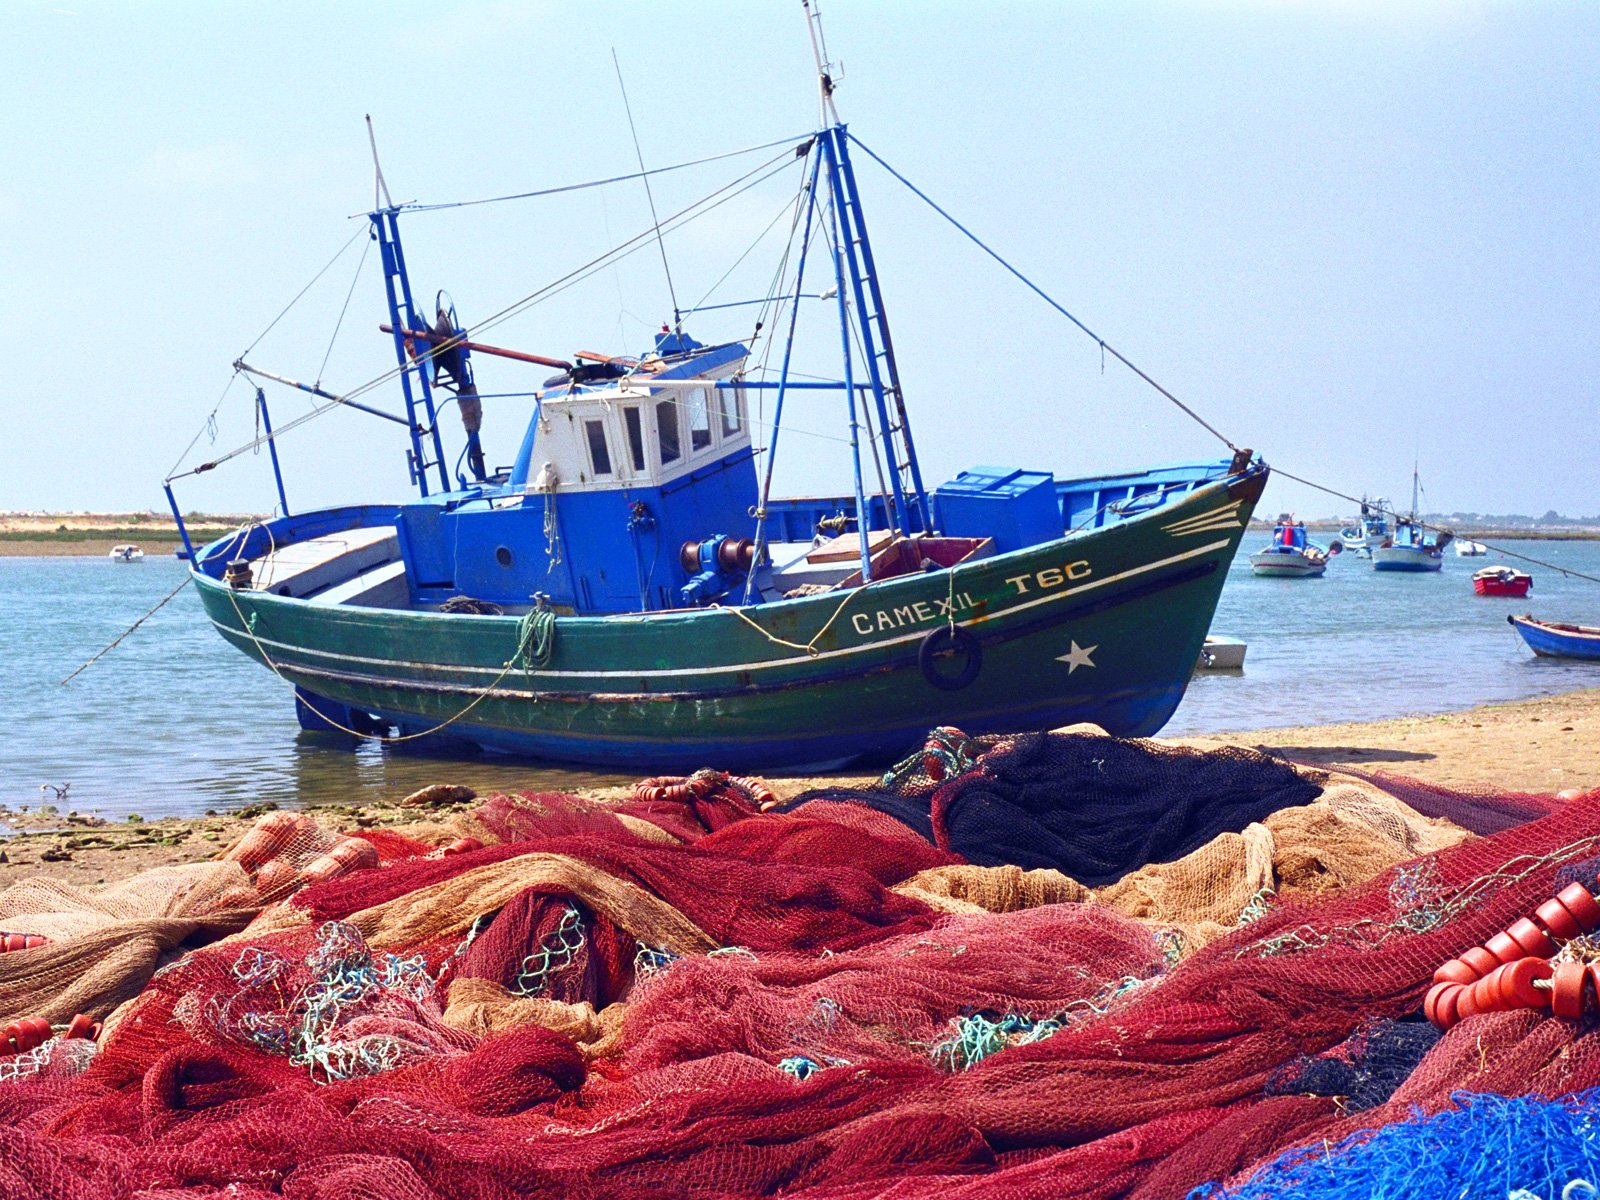 Boat Pictures City Fishing With The Nets Outside Portugal 532505 Wallpaper wallpaper